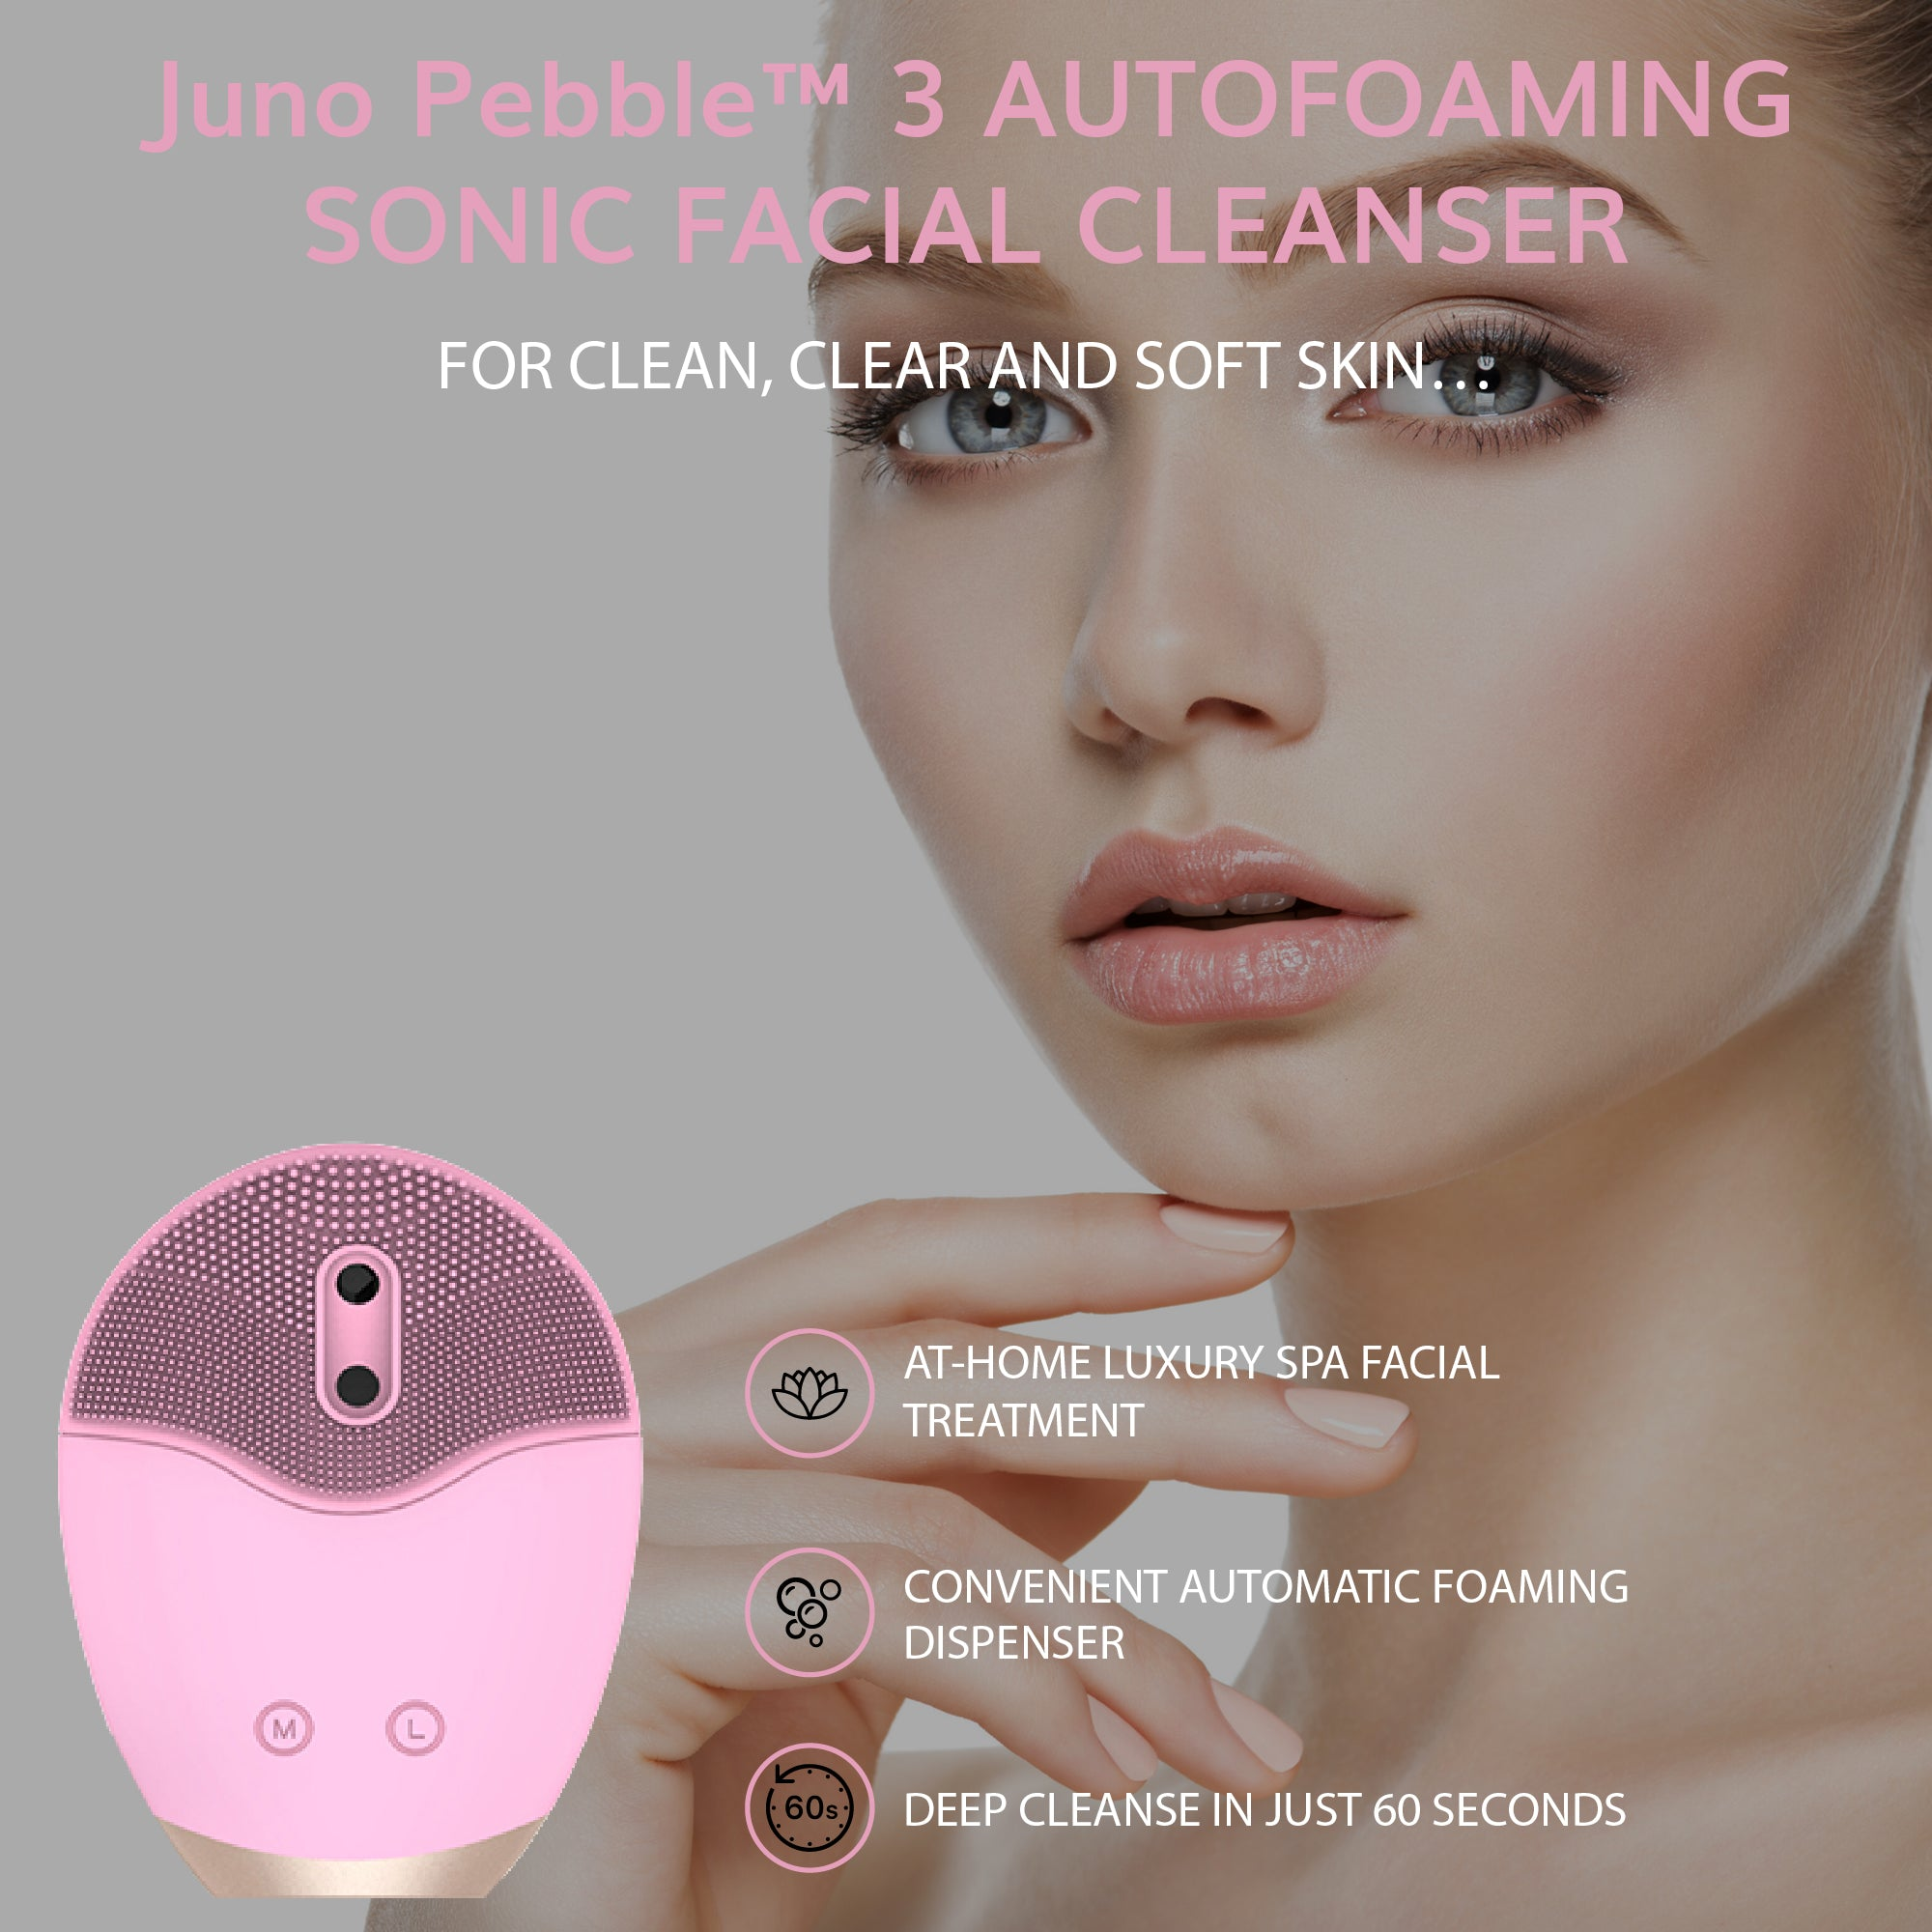 Juno Pebble™ Autofoaming Sonic Facial Cleanser